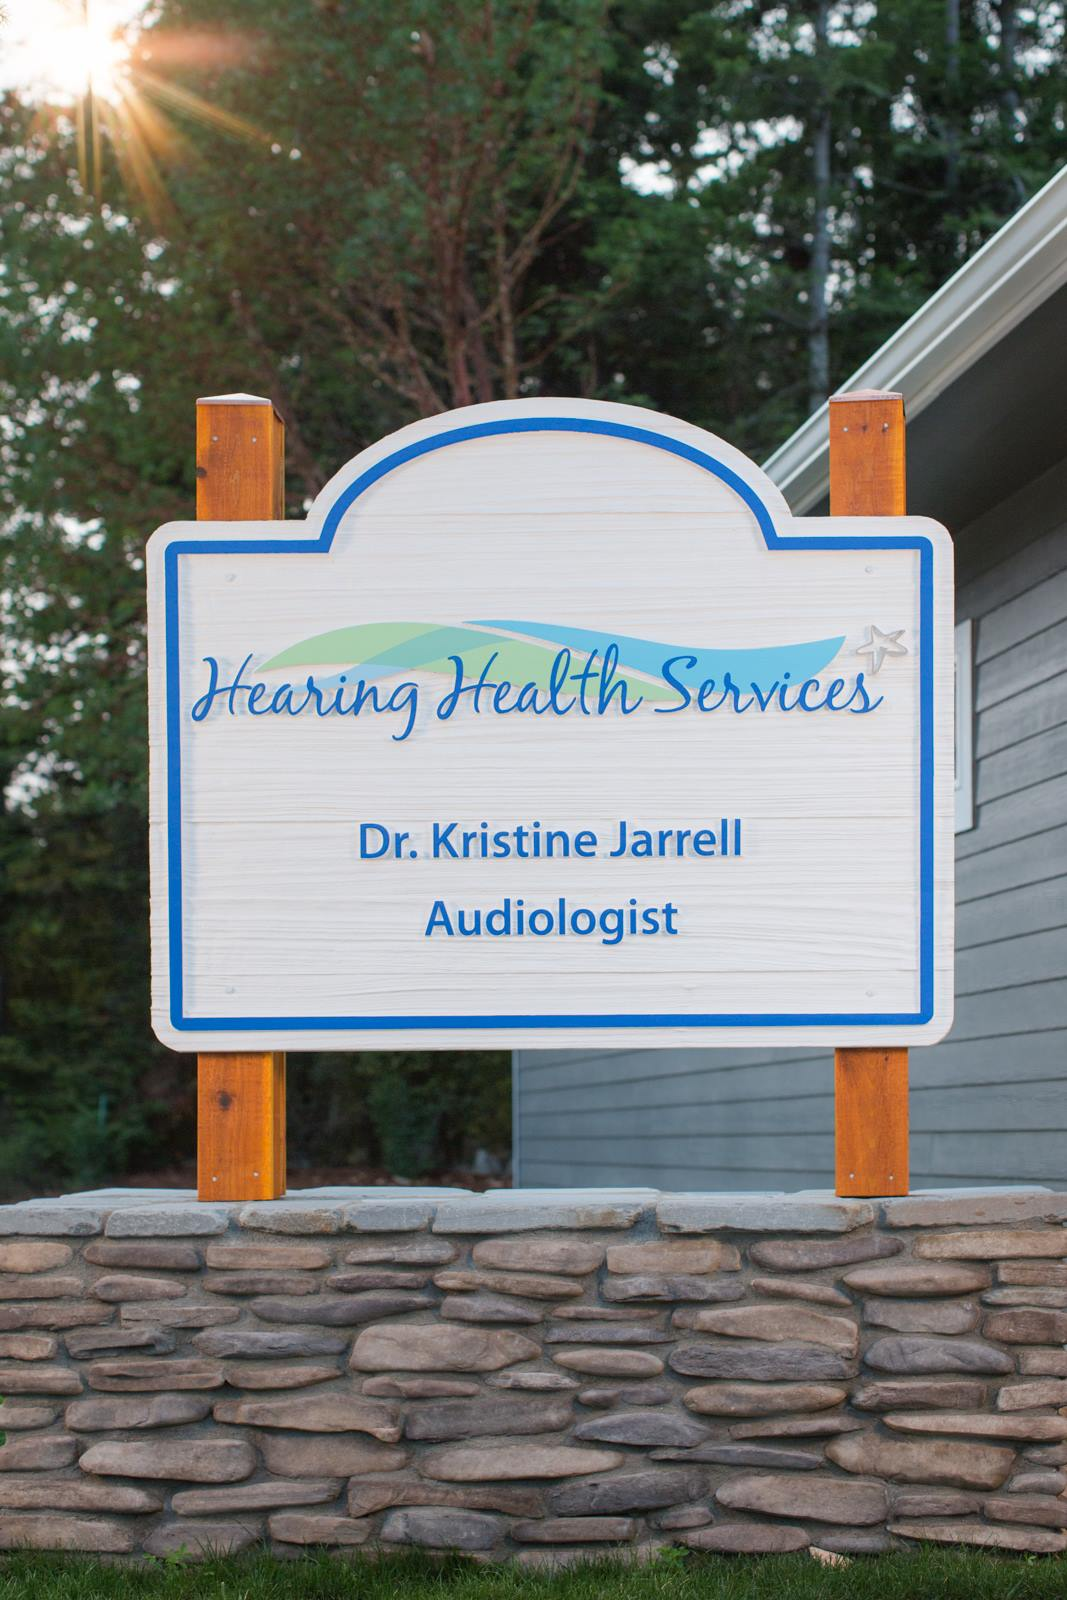 Dr. Kristine Jarrell - Hearing Health Services